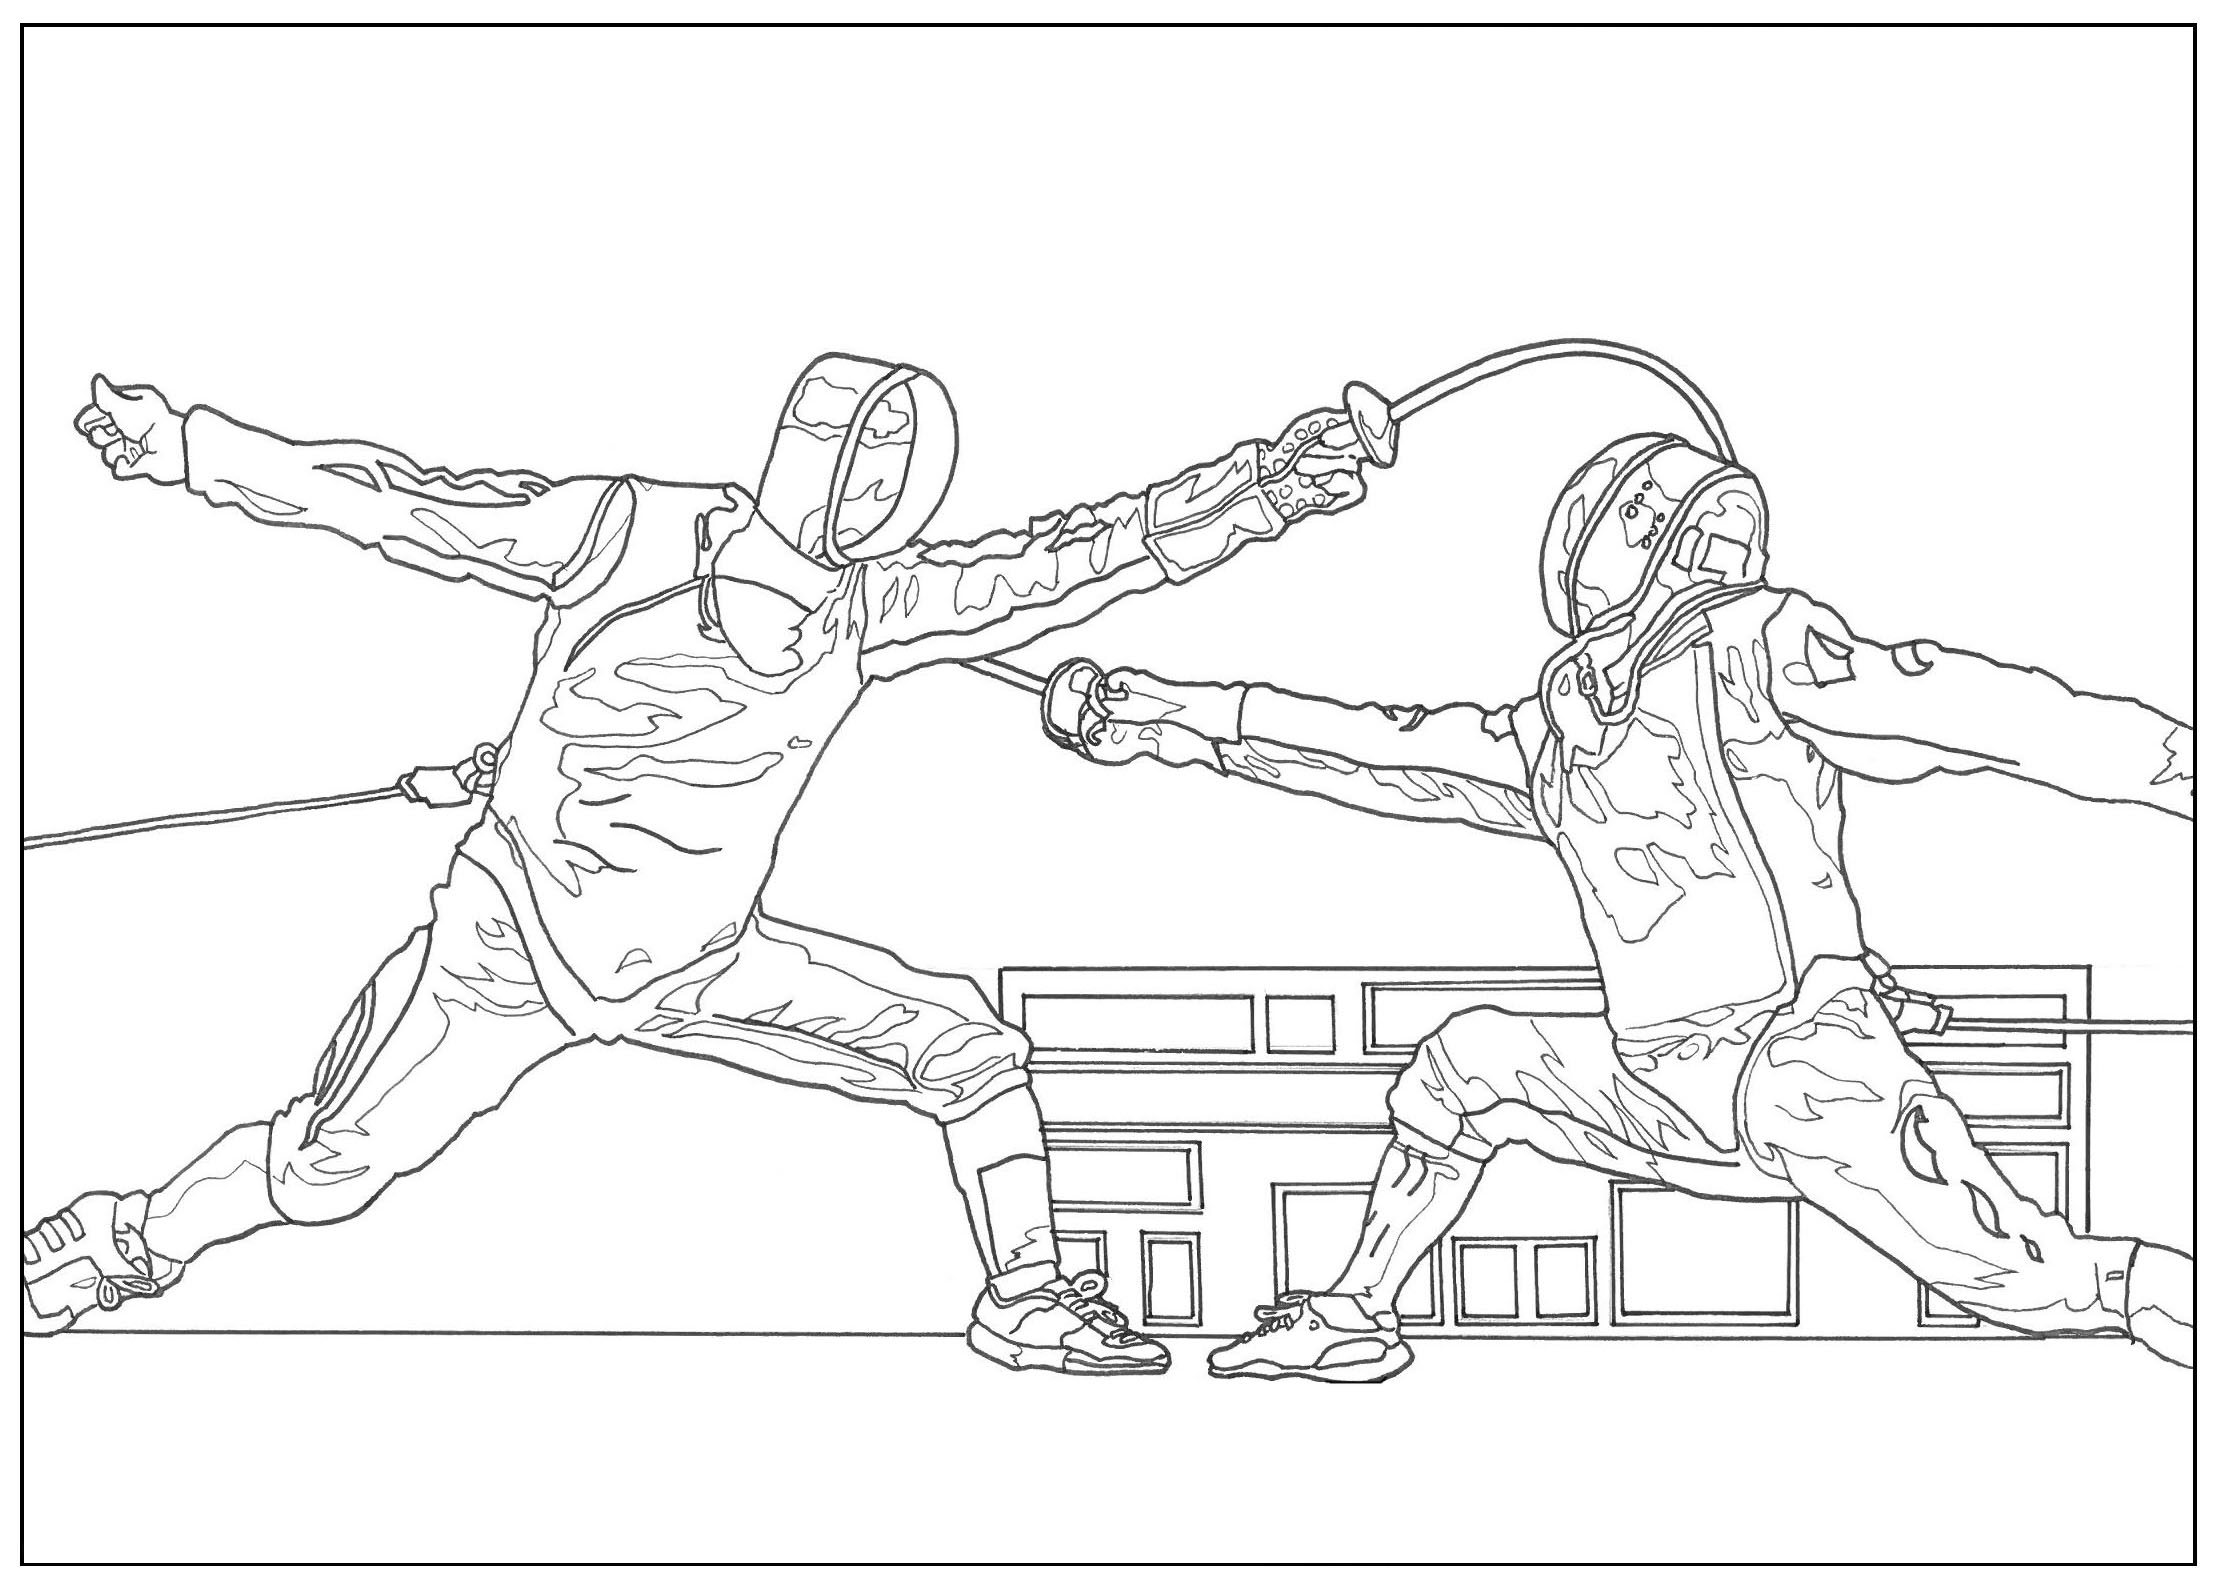 Sport fencing - Sport Coloring pages for kids to print & color